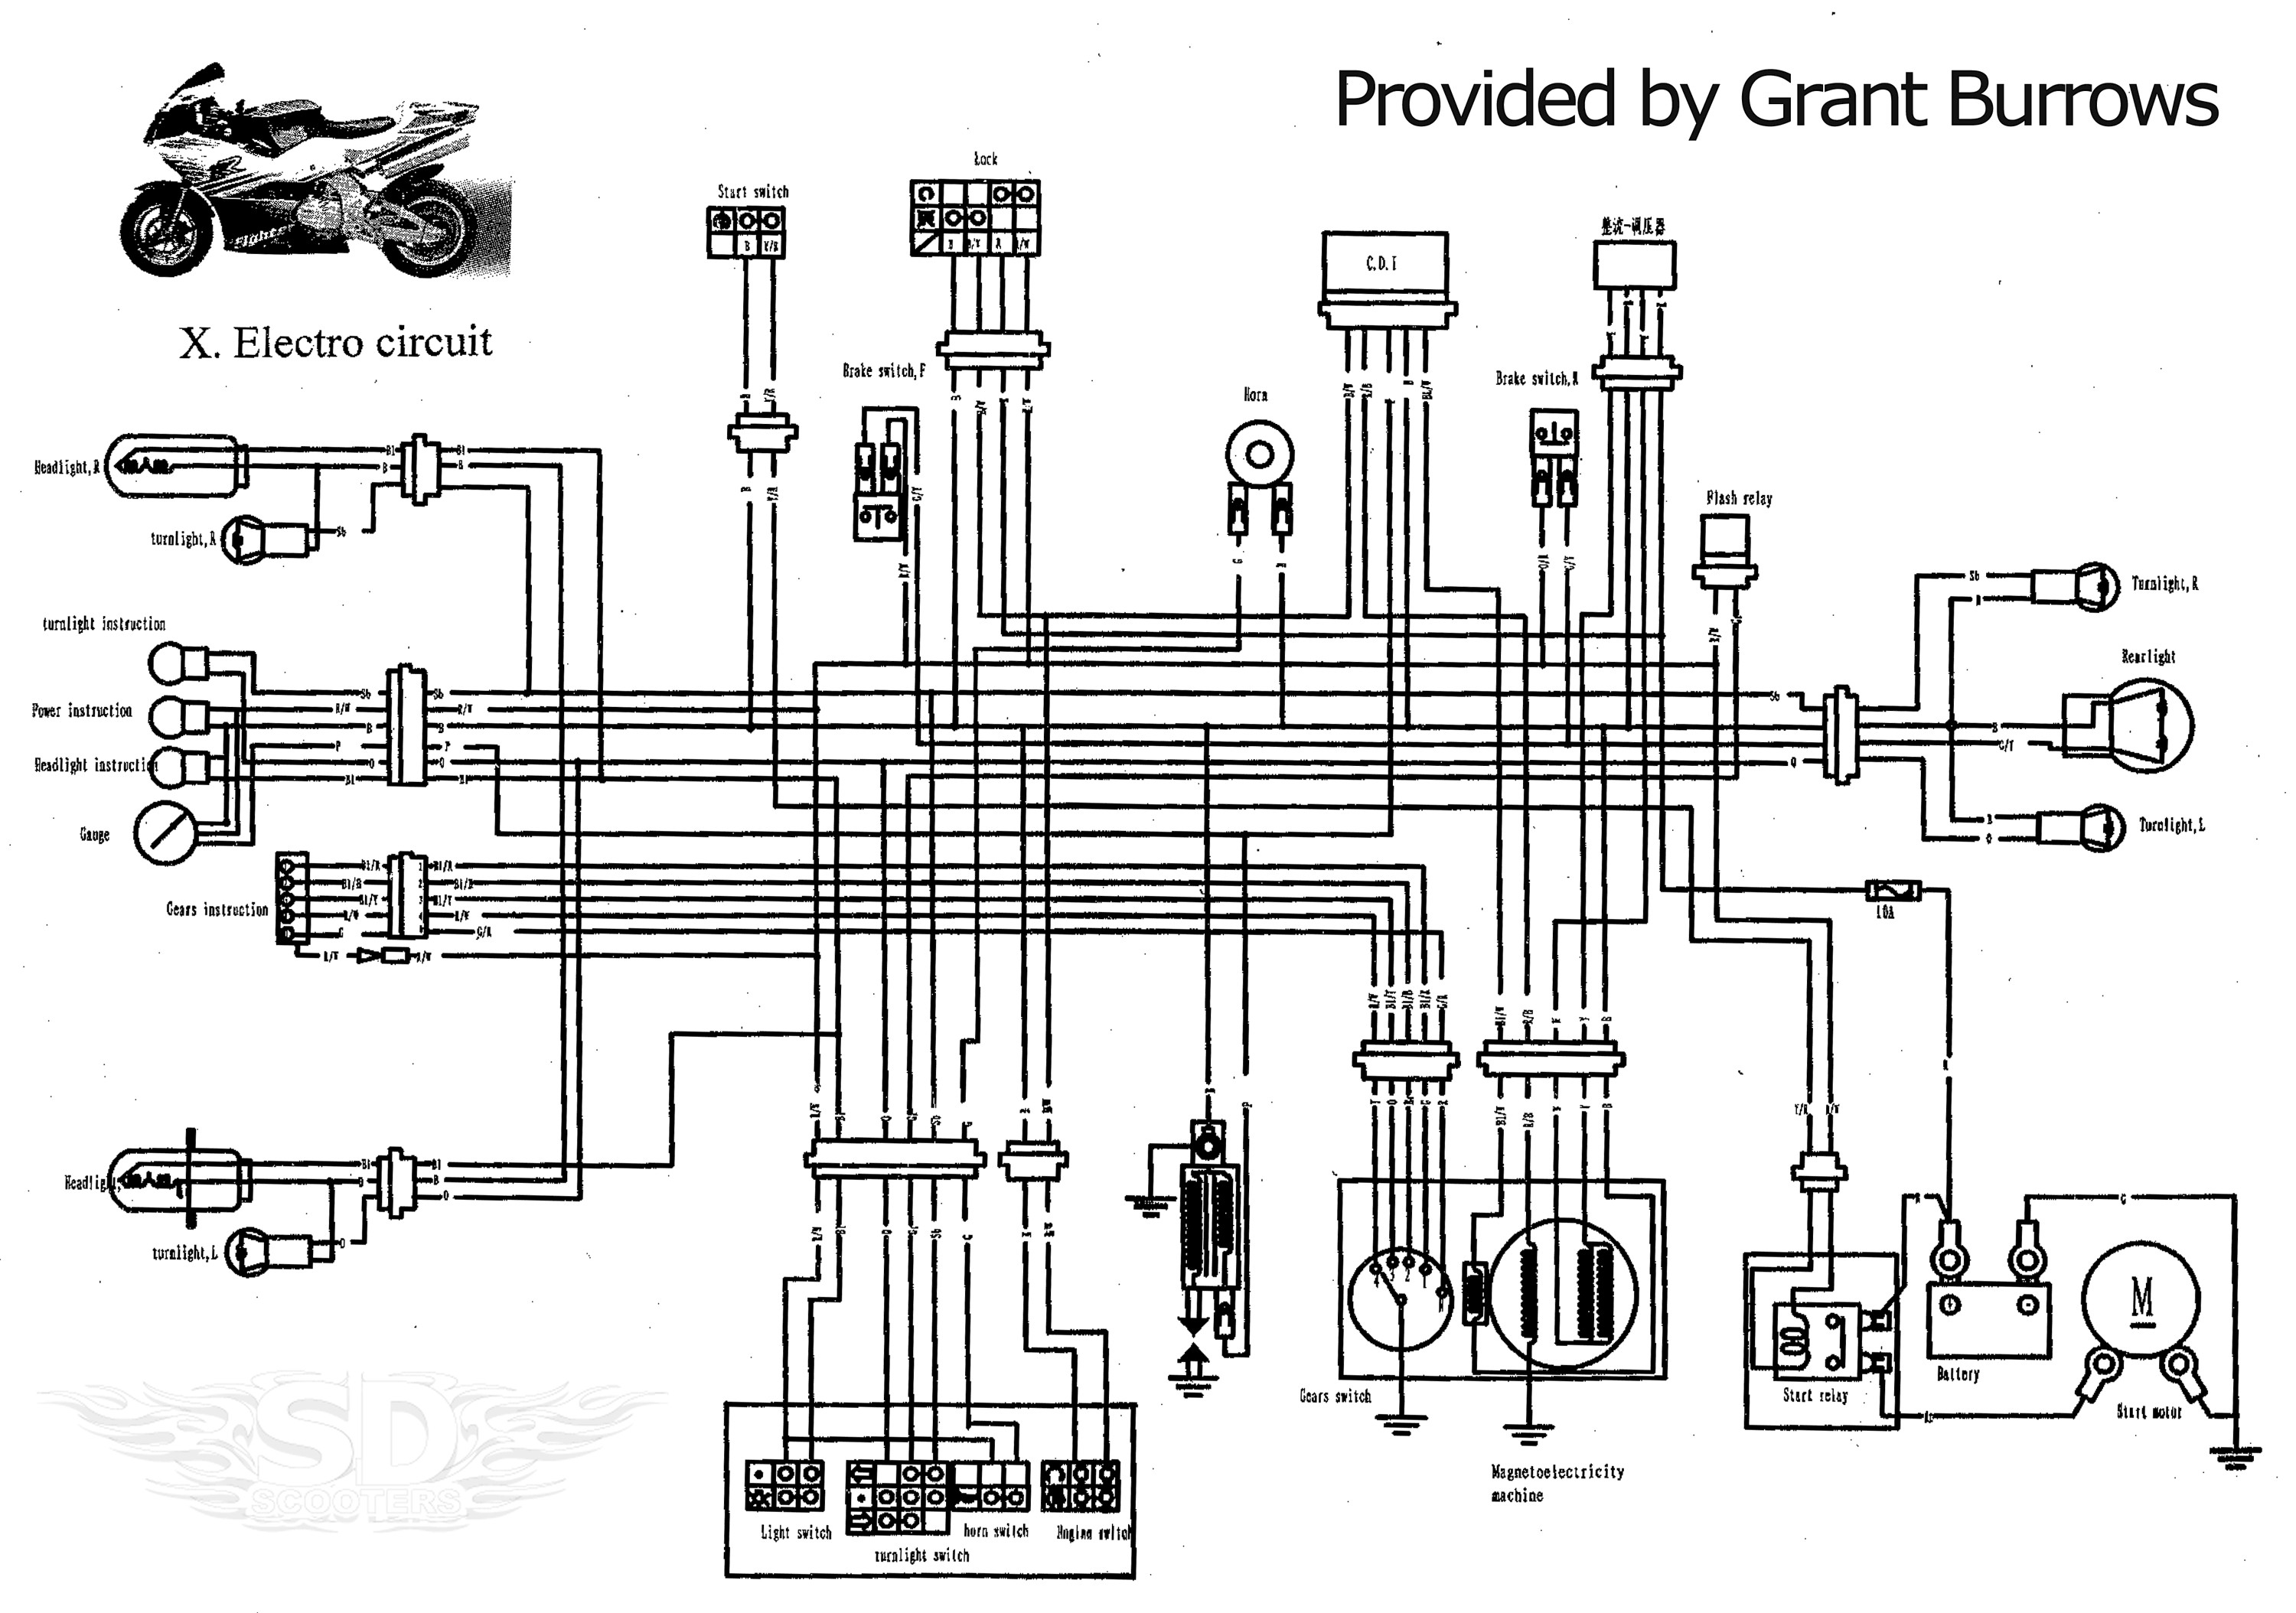 Chevy S10 Engine Diagram Wiring In Addition 57 Heater 210 Eye Pocket Bike Get Free Image About Of